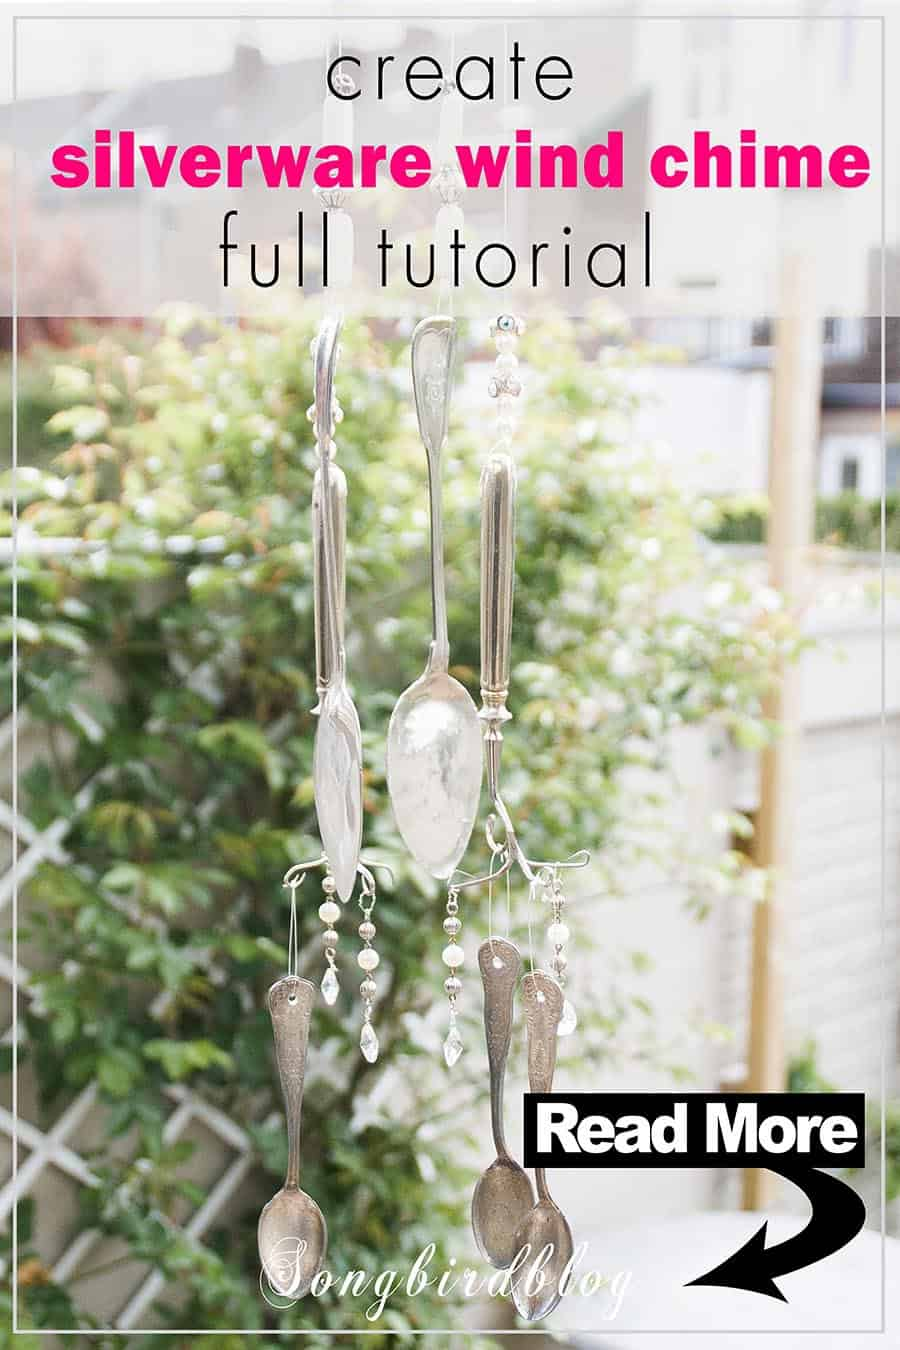 silverware wind chime with text overlay